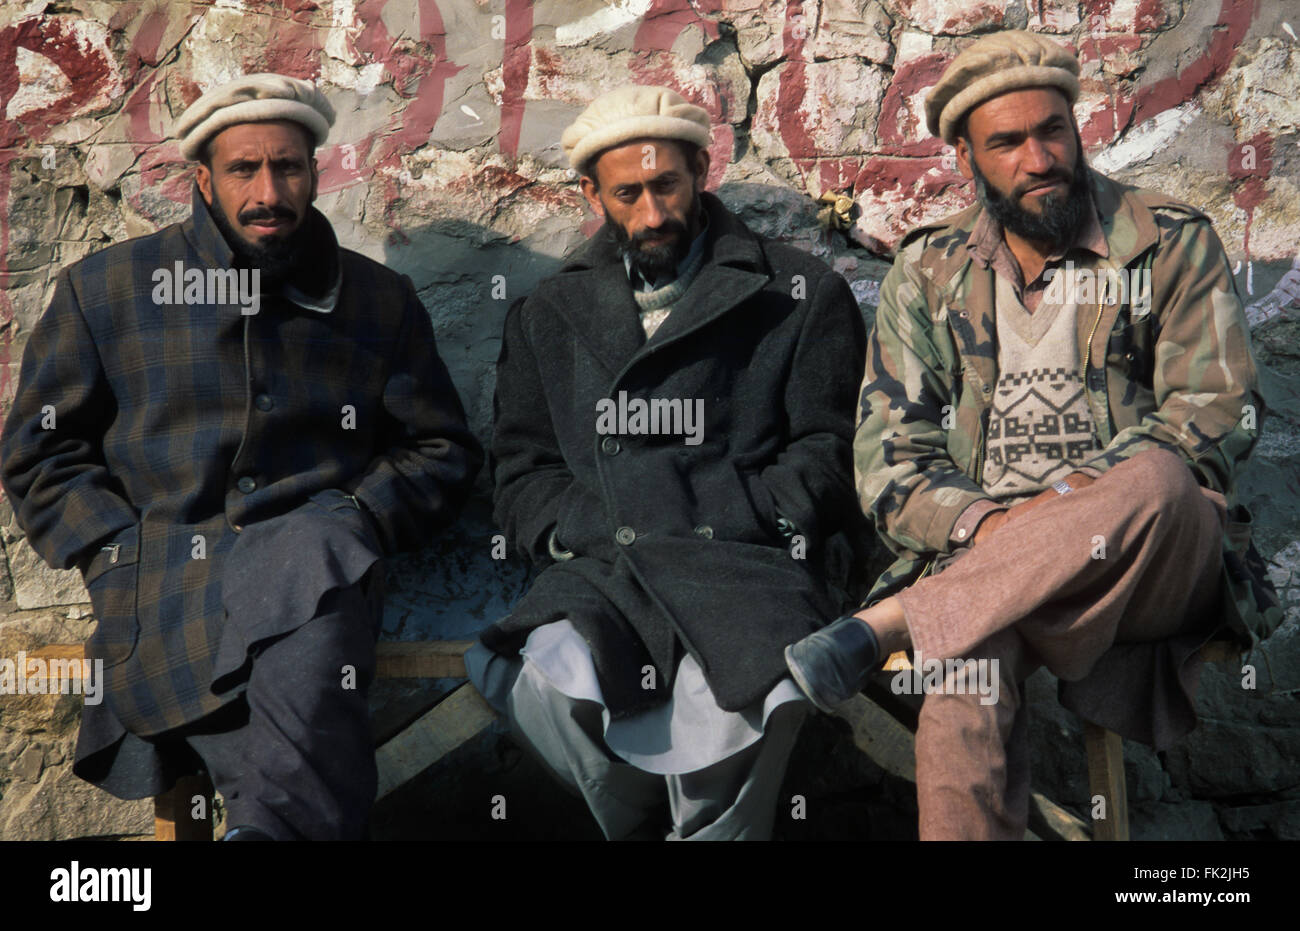 Three Pakistani men sitting on a bench in the village of Karimabad, Hunza Valley, Pakistan. - Stock Image